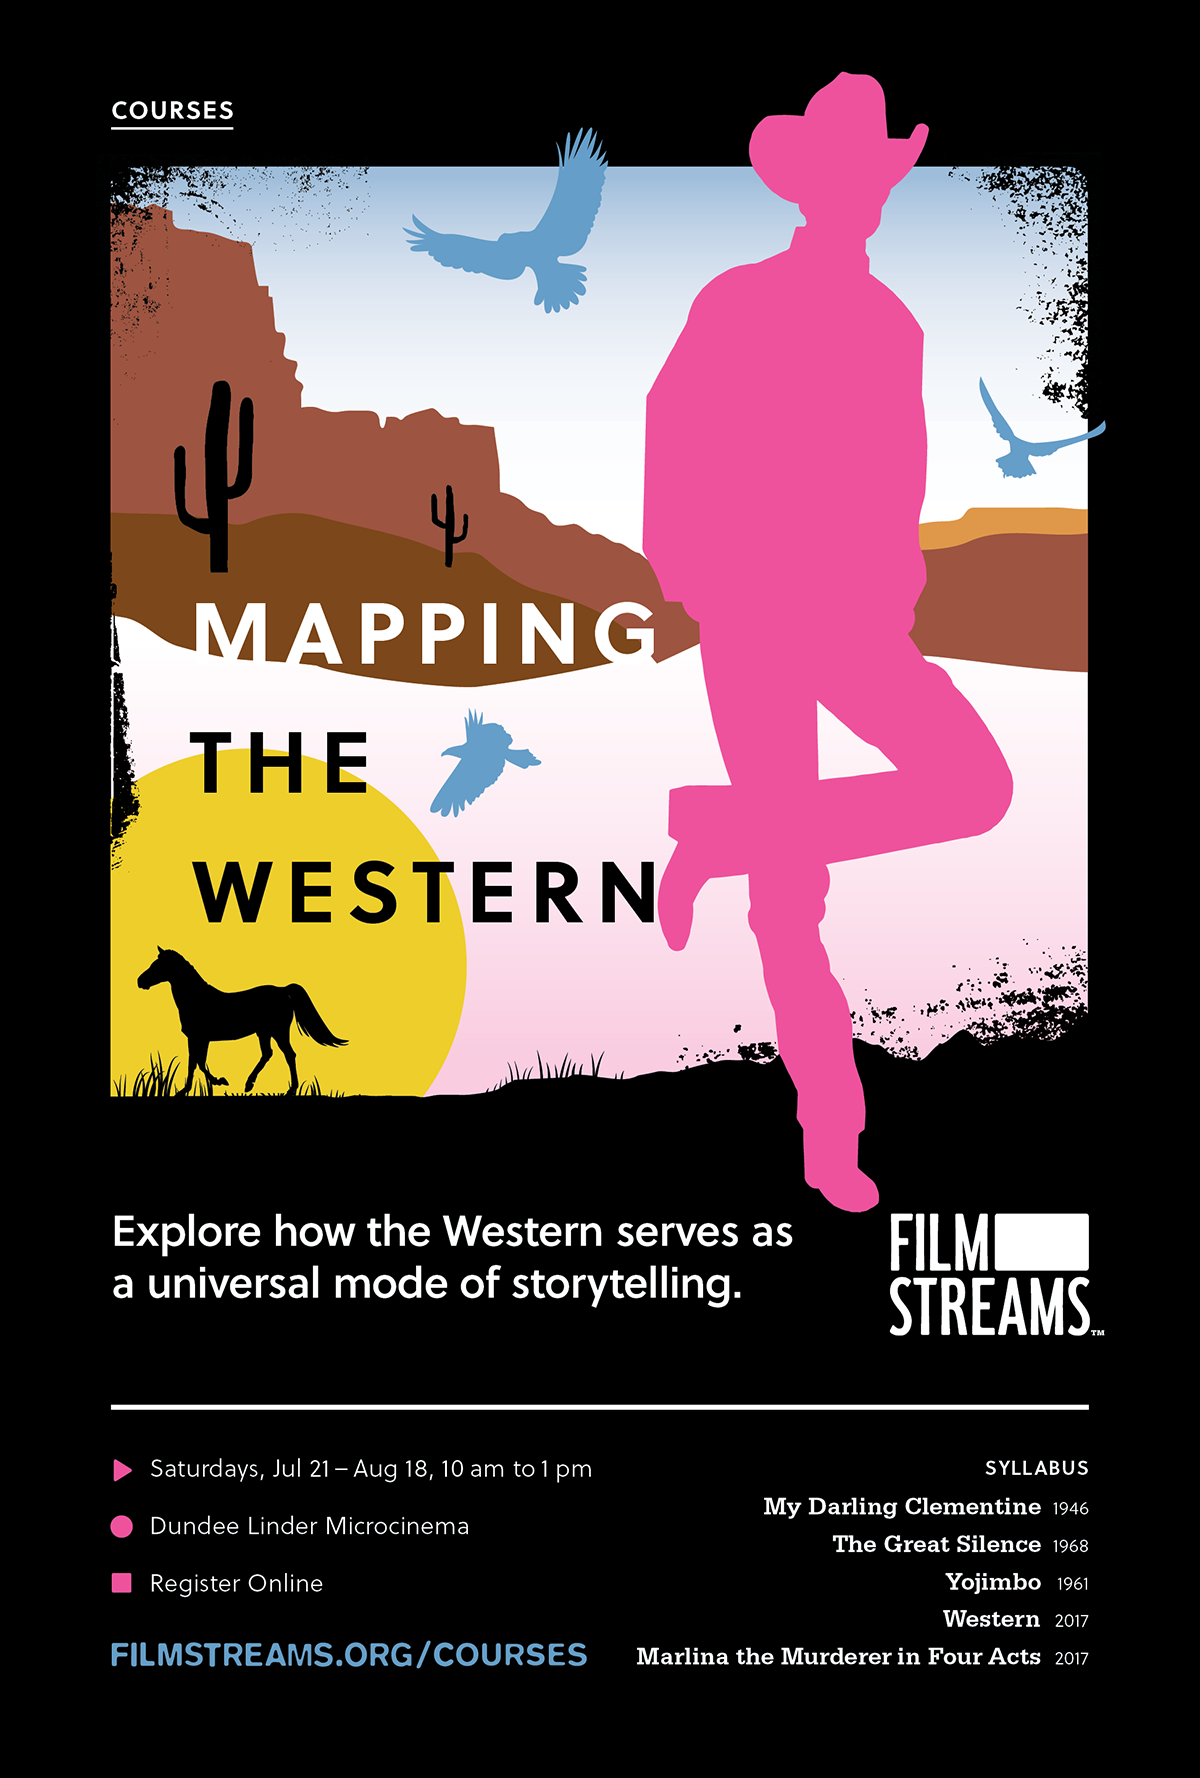 jkdc_filmstreams-courses-thewestern.png